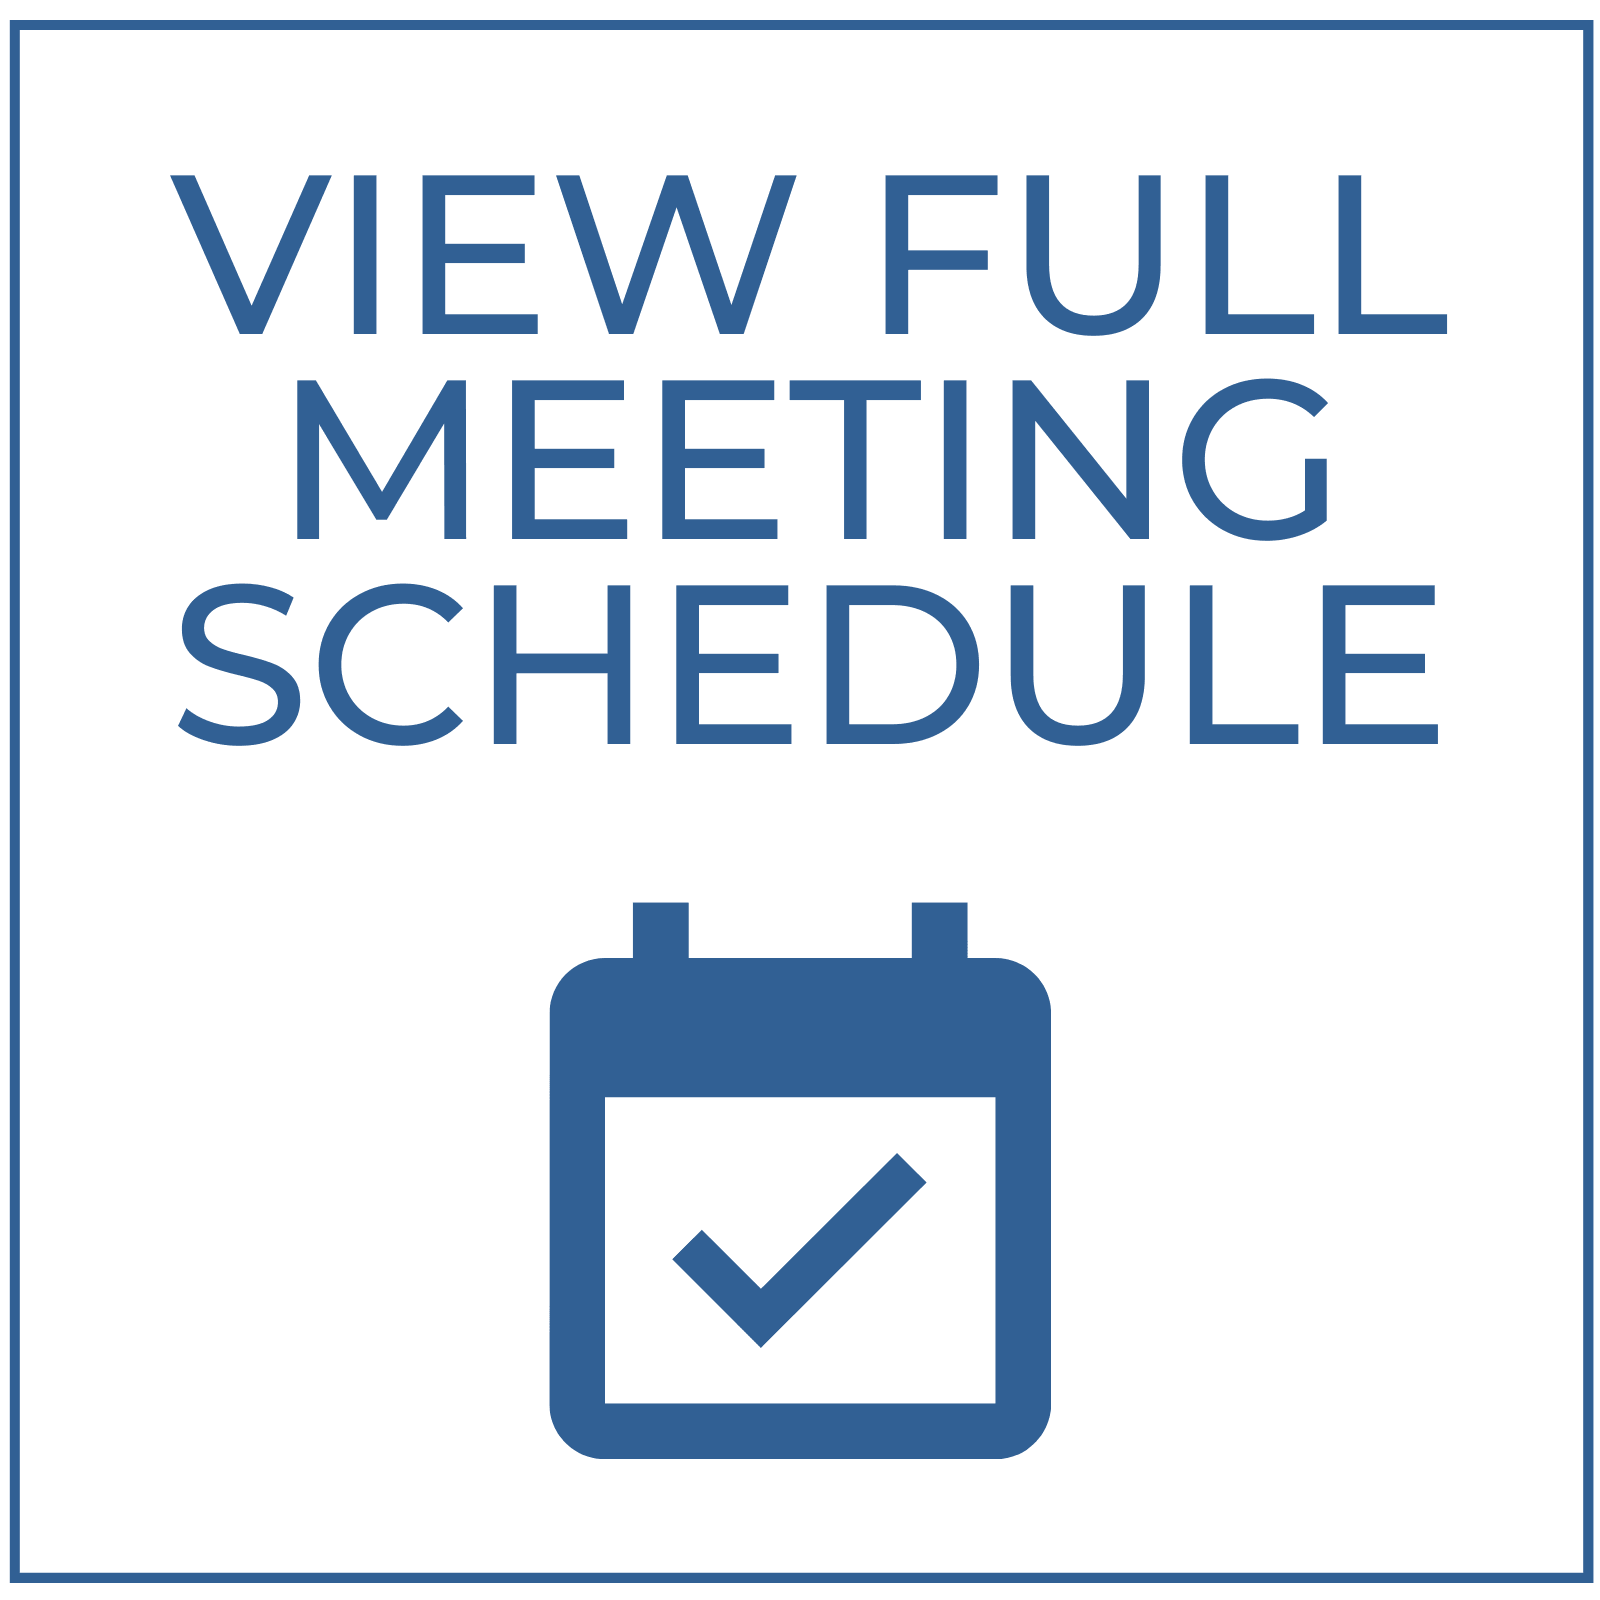 View full meeting schedule